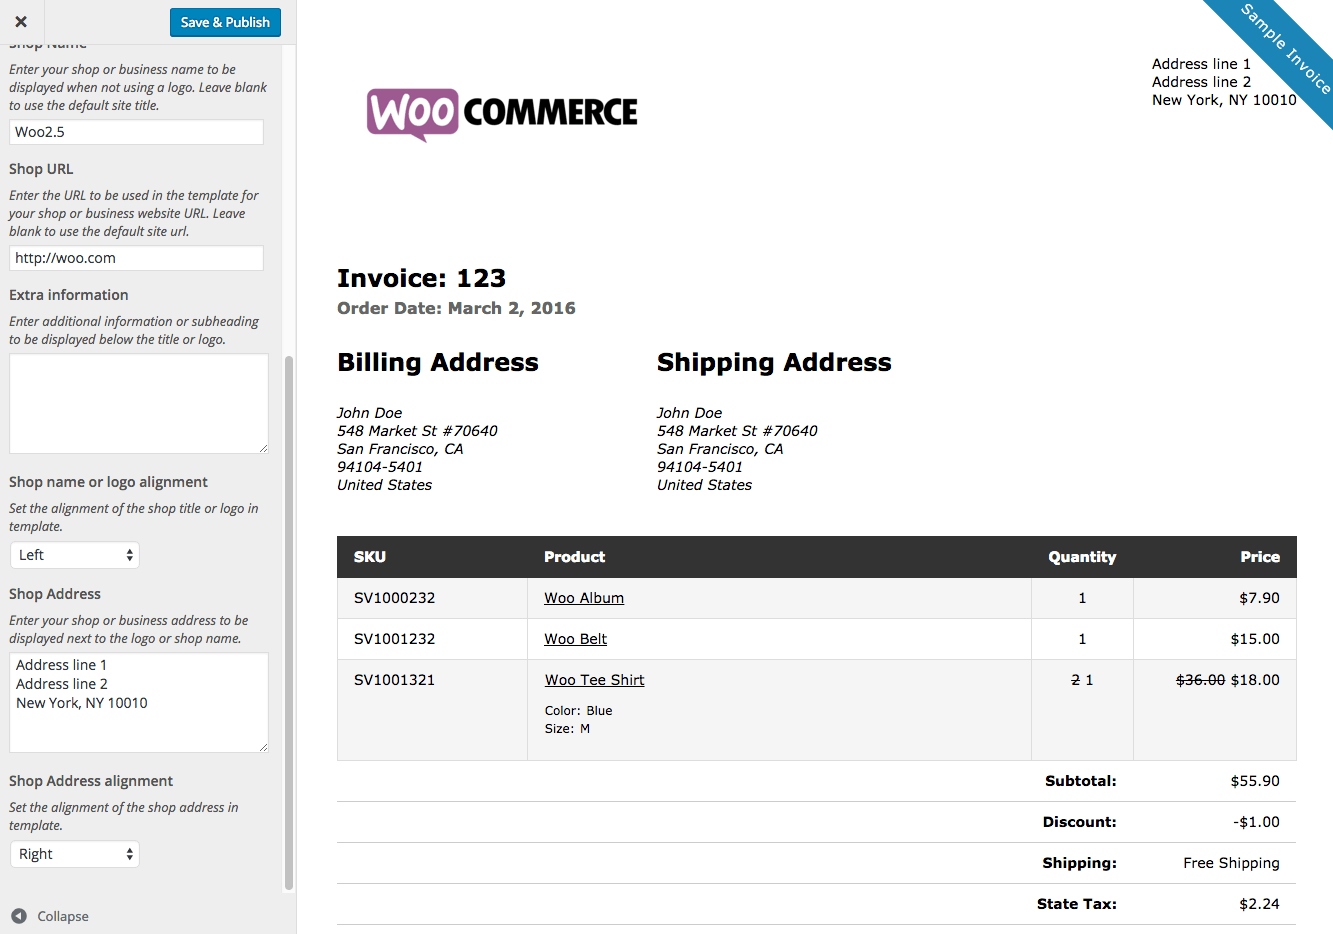 Angkajituus  Seductive Woocommerce Print Invoices Amp Packing Lists  Woocommerce Docs With Remarkable Woocommerce Print Invoices  Packing Lists Customizer With Extraordinary Daycare Receipts Also Bill Receipt Template In Addition Sephora No Receipt Return Policy And How To Print A Receipt As Well As American Airline Receipts Additionally Gas Receipt Generator From Docswoocommercecom With Angkajituus  Remarkable Woocommerce Print Invoices Amp Packing Lists  Woocommerce Docs With Extraordinary Woocommerce Print Invoices  Packing Lists Customizer And Seductive Daycare Receipts Also Bill Receipt Template In Addition Sephora No Receipt Return Policy From Docswoocommercecom